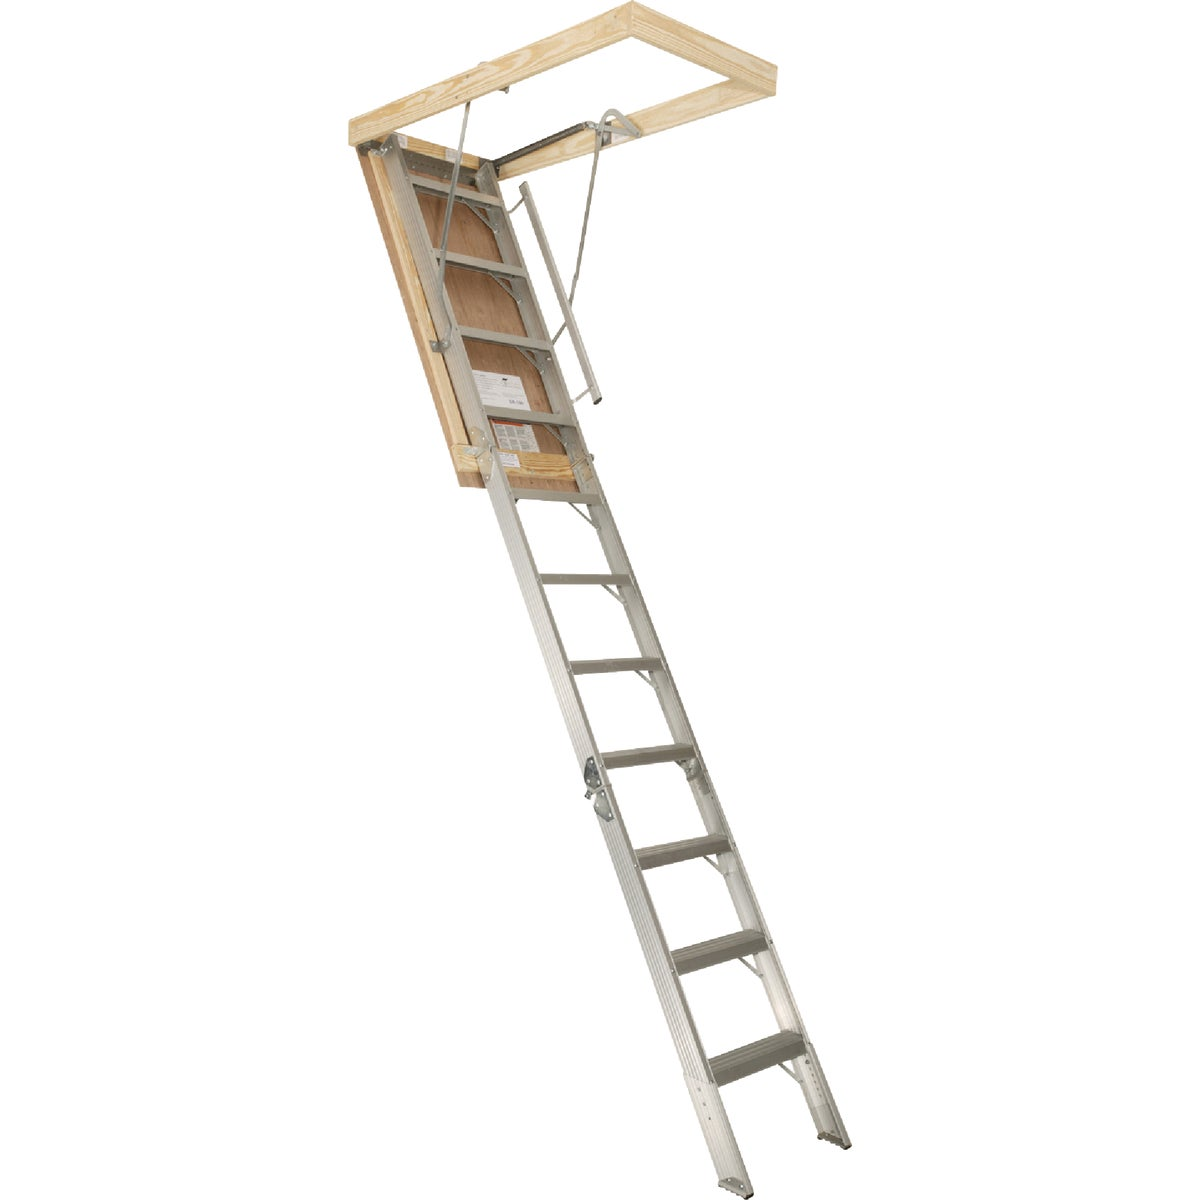 22X120 ALUM ATTIC STAIR - AA2210 by Louisville Ladder